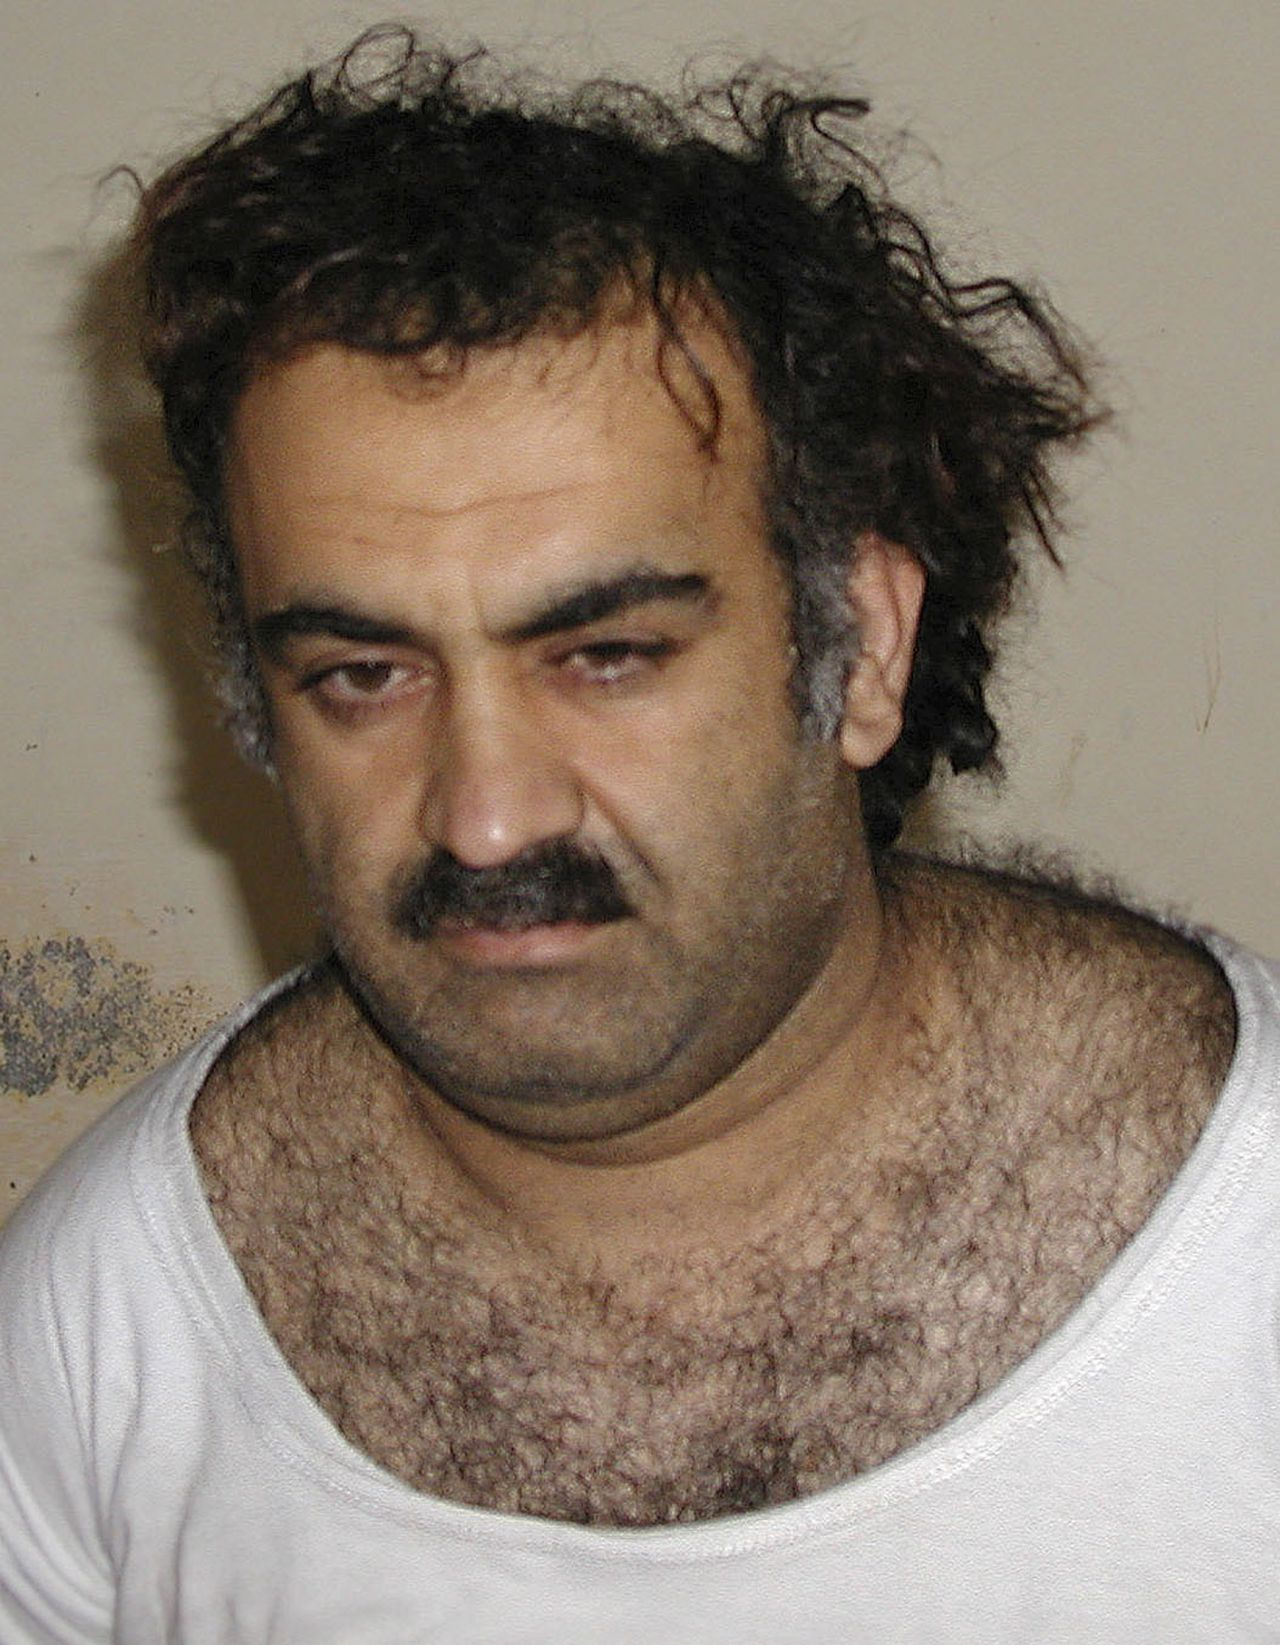 Khalid Sheikh Mohammed FILE - In this March 1, 2003 file photo, Khalid Sheikh Mohammed is seen shortly after his capture during a raid in Pakistan. The results of the Pearl Project, an investigation carried out by a team of American journalists and students and spanning more than three years, raise troubling questions about Pakistan's dysfunctional criminal justice system and underscore the limits U.S. officials face in relying on Pakistani authorities. (AP Photo/File)